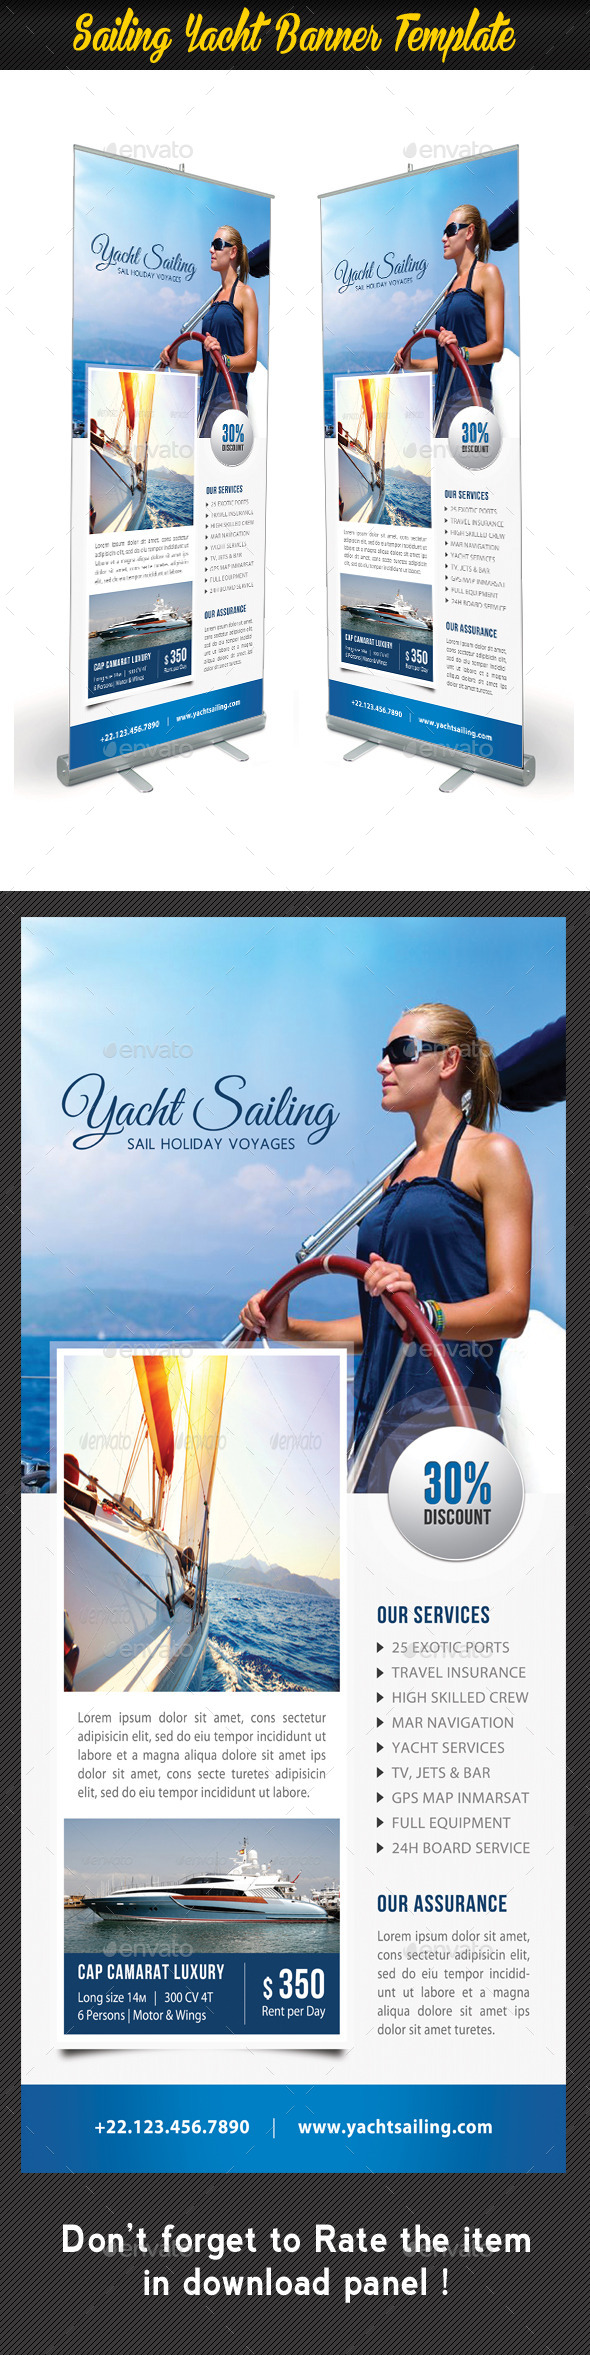 GraphicRiver Sailing Yacht Banner Template 05 11172057